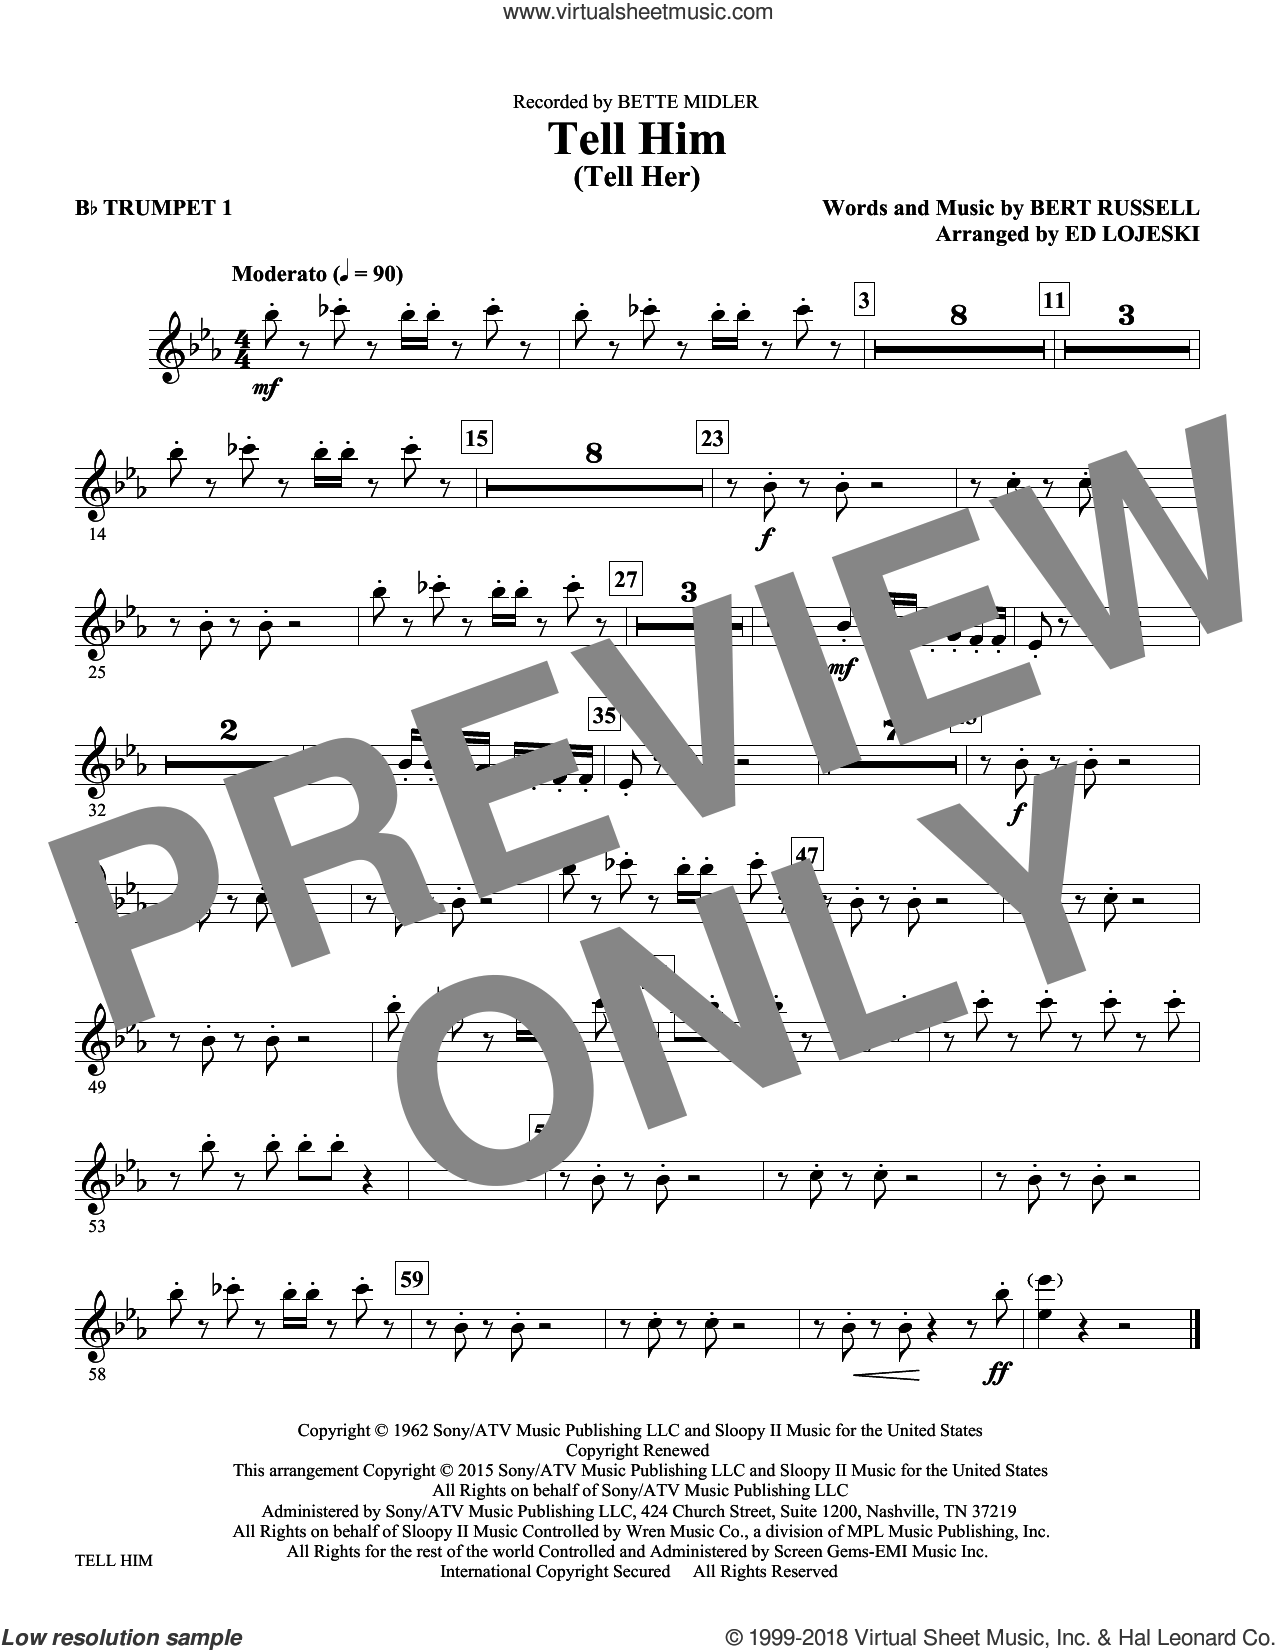 Tell Him (Tell Her) sheet music for orchestra/band (Bb trumpet 1) by Bert Russell and Ed Lojeski. Score Image Preview.